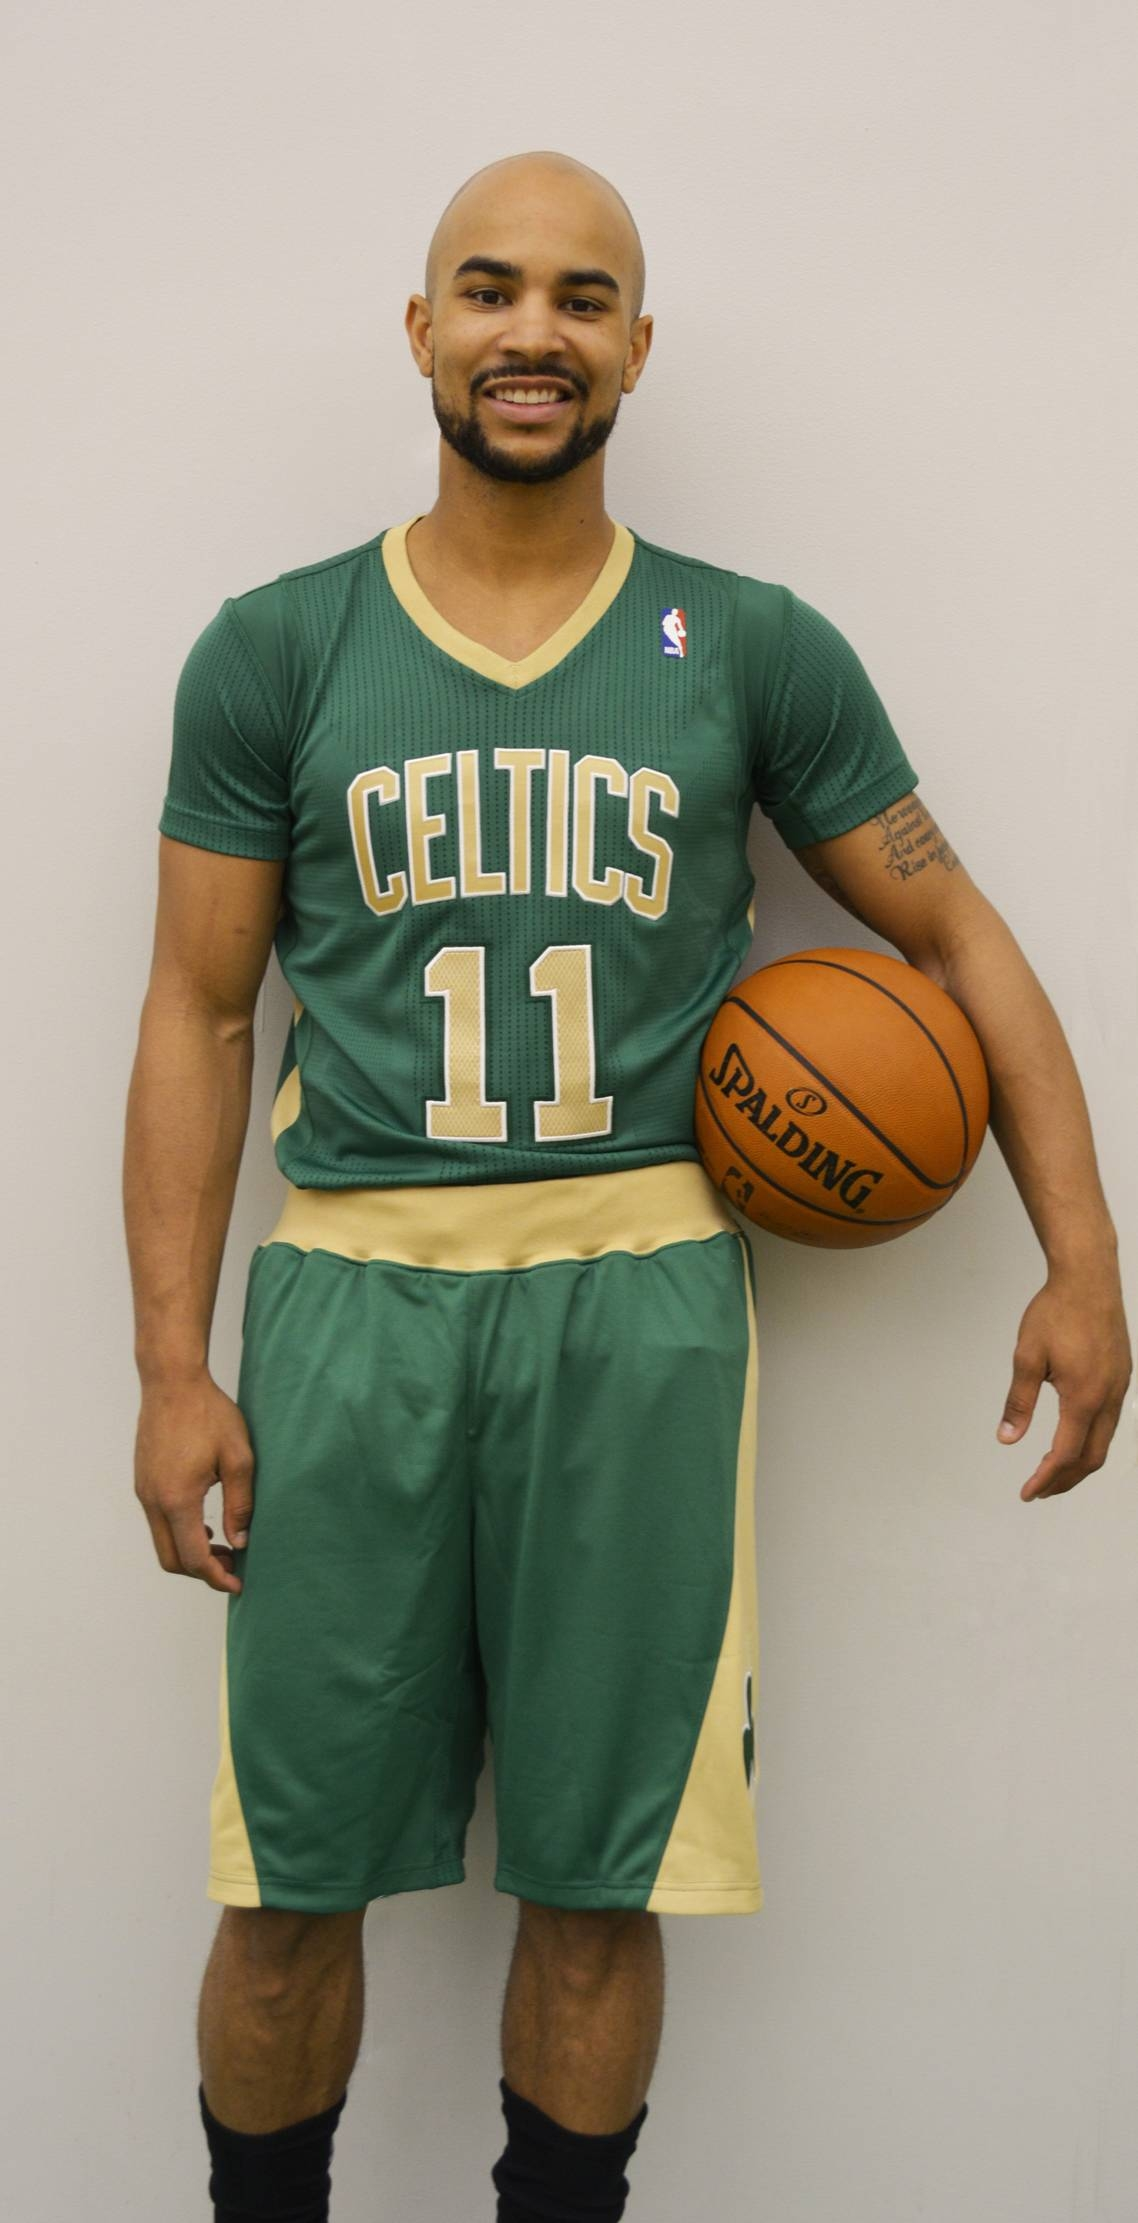 Celtics Uniform 32